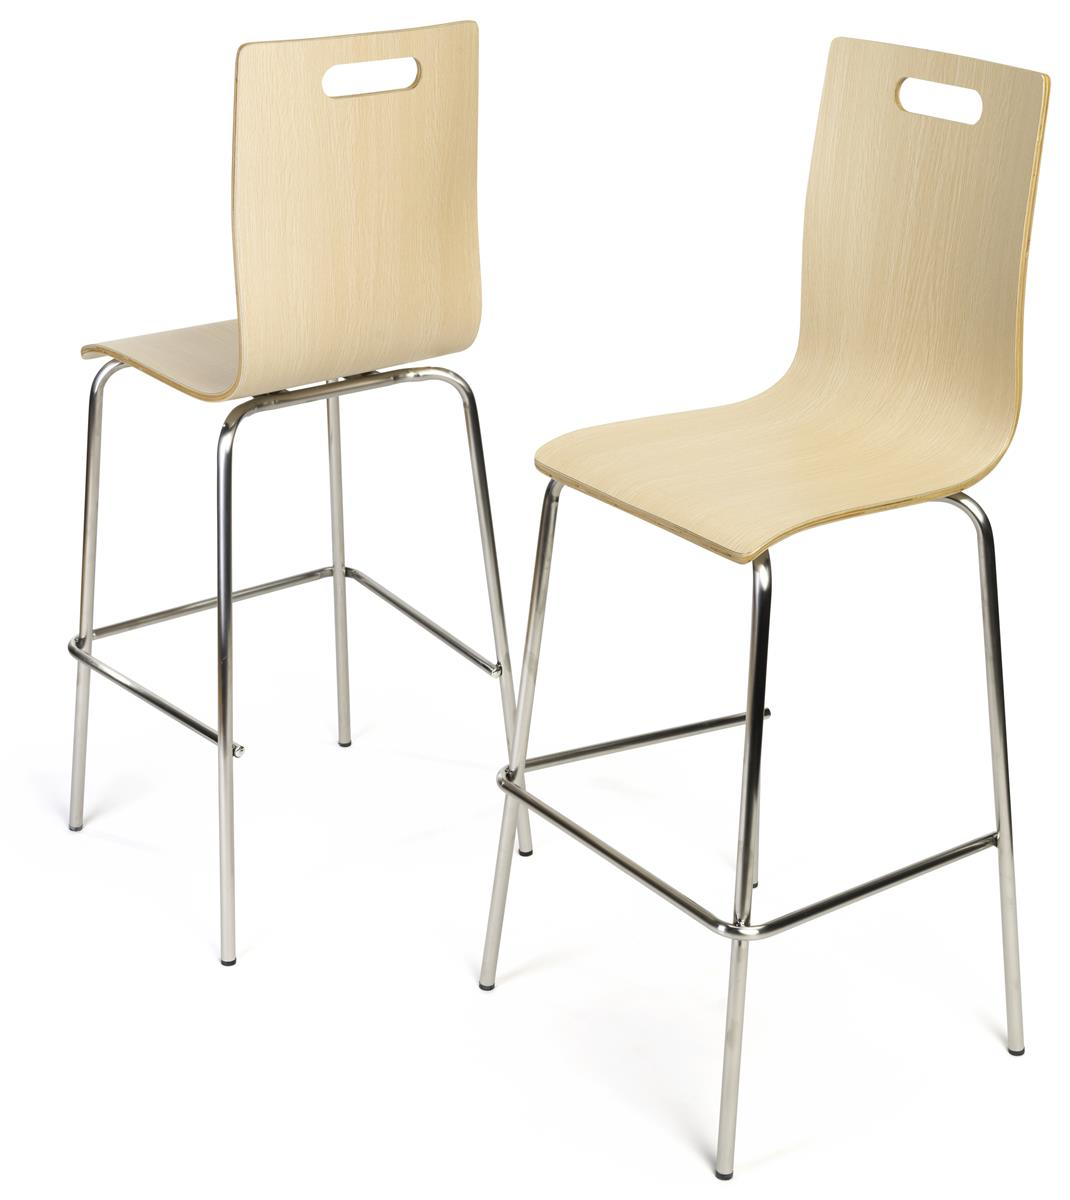 28 5 Bentwood Chair W Stainless Steel Legs Set Of 2 Light Finish